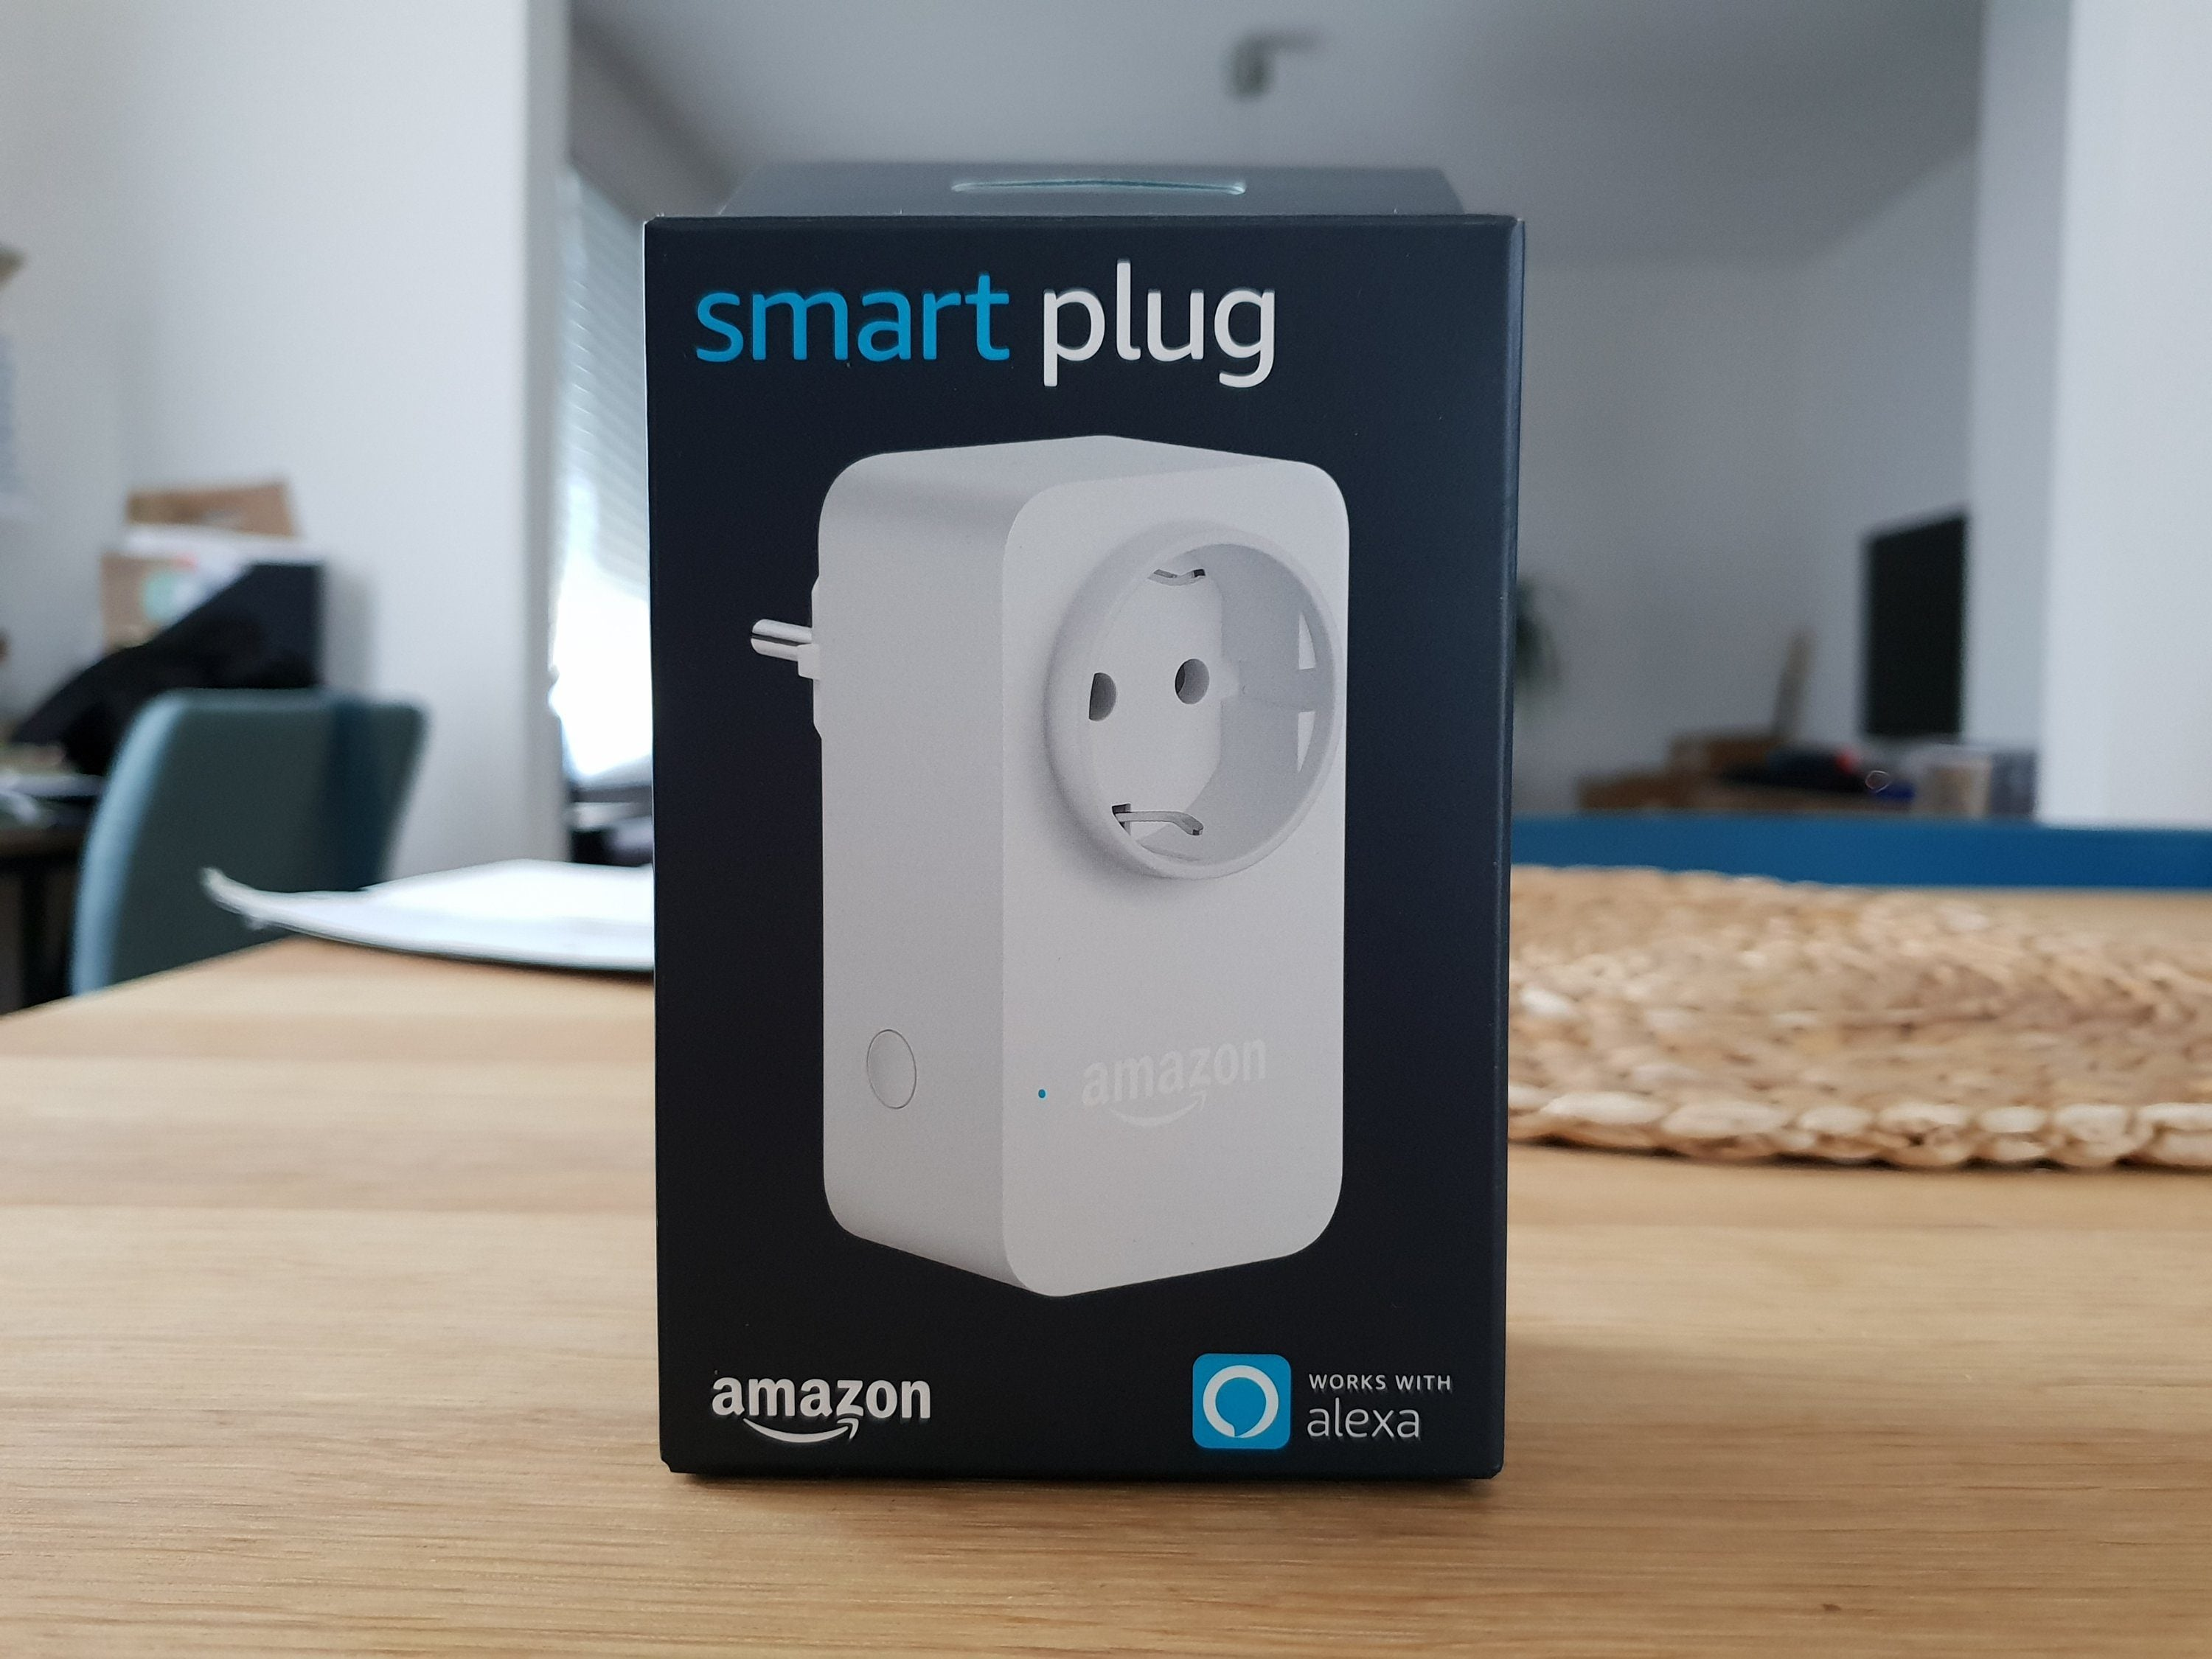 Amazon Smart Plug WLAN-Steckdose im Test 9